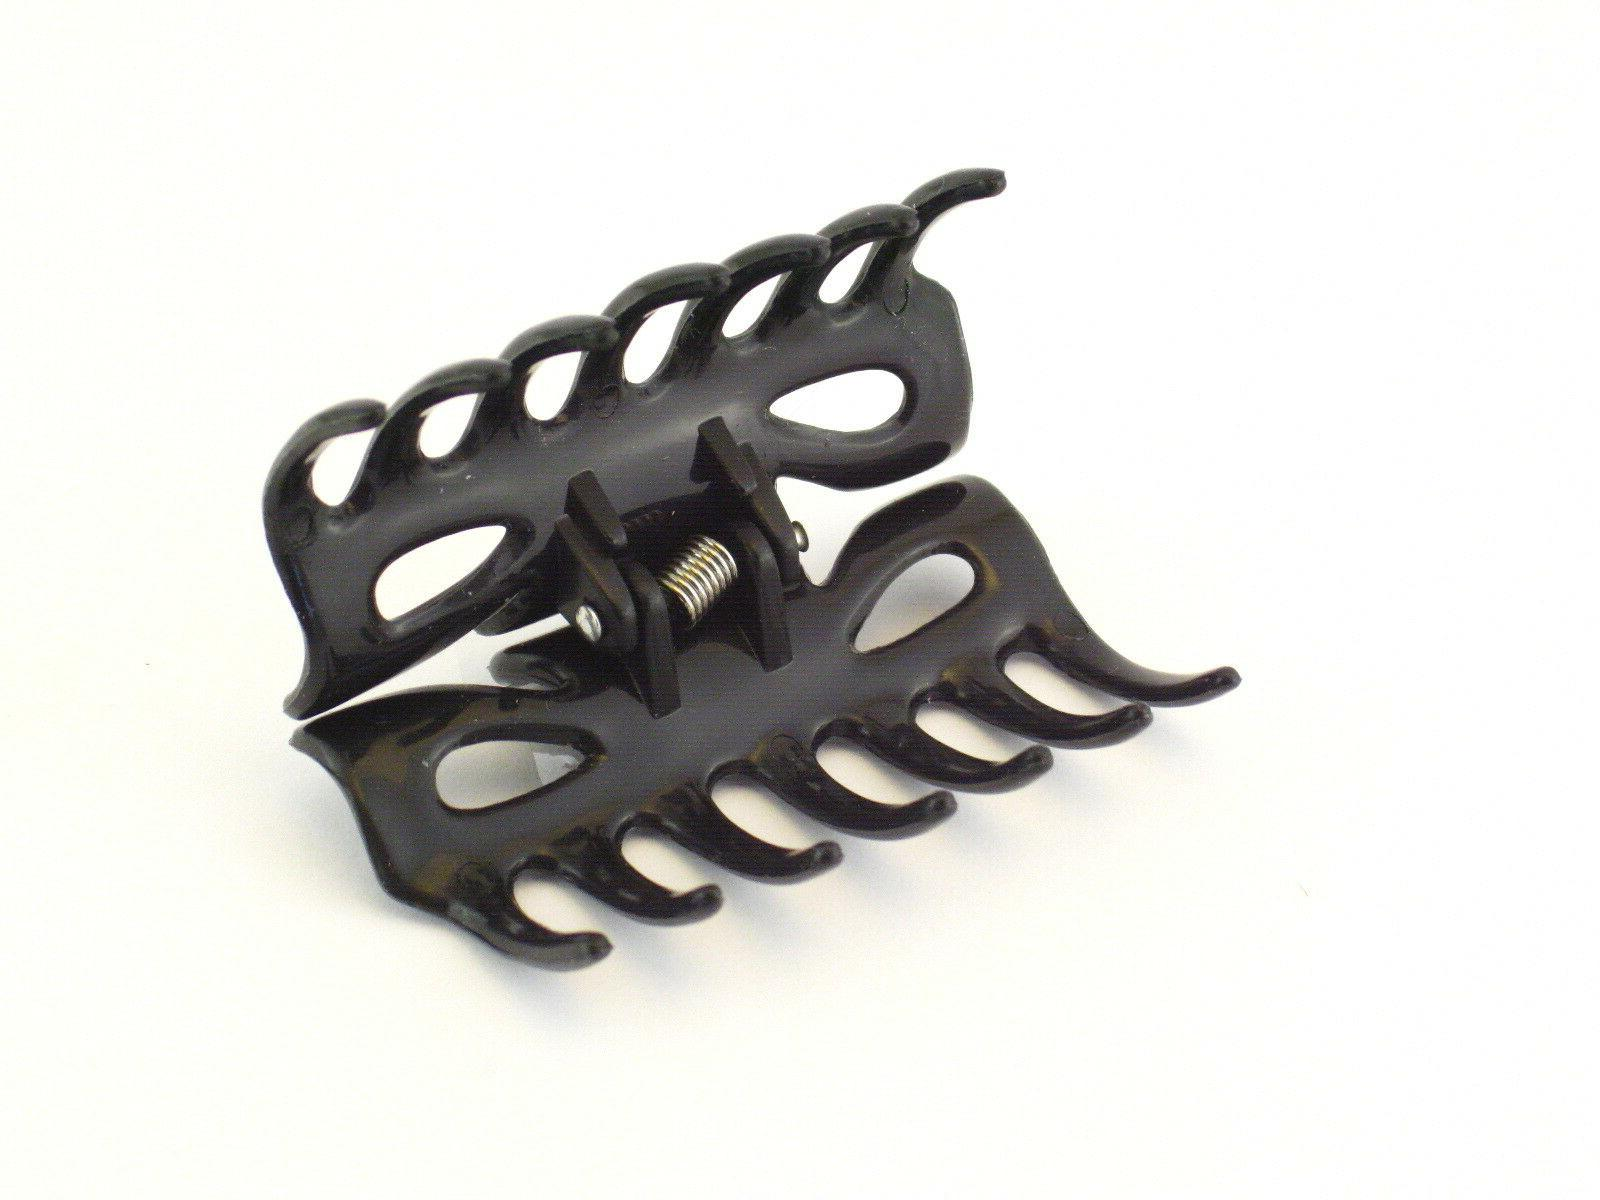 GOODY MEDIUM CLAW CLIPS - 4 PCS.